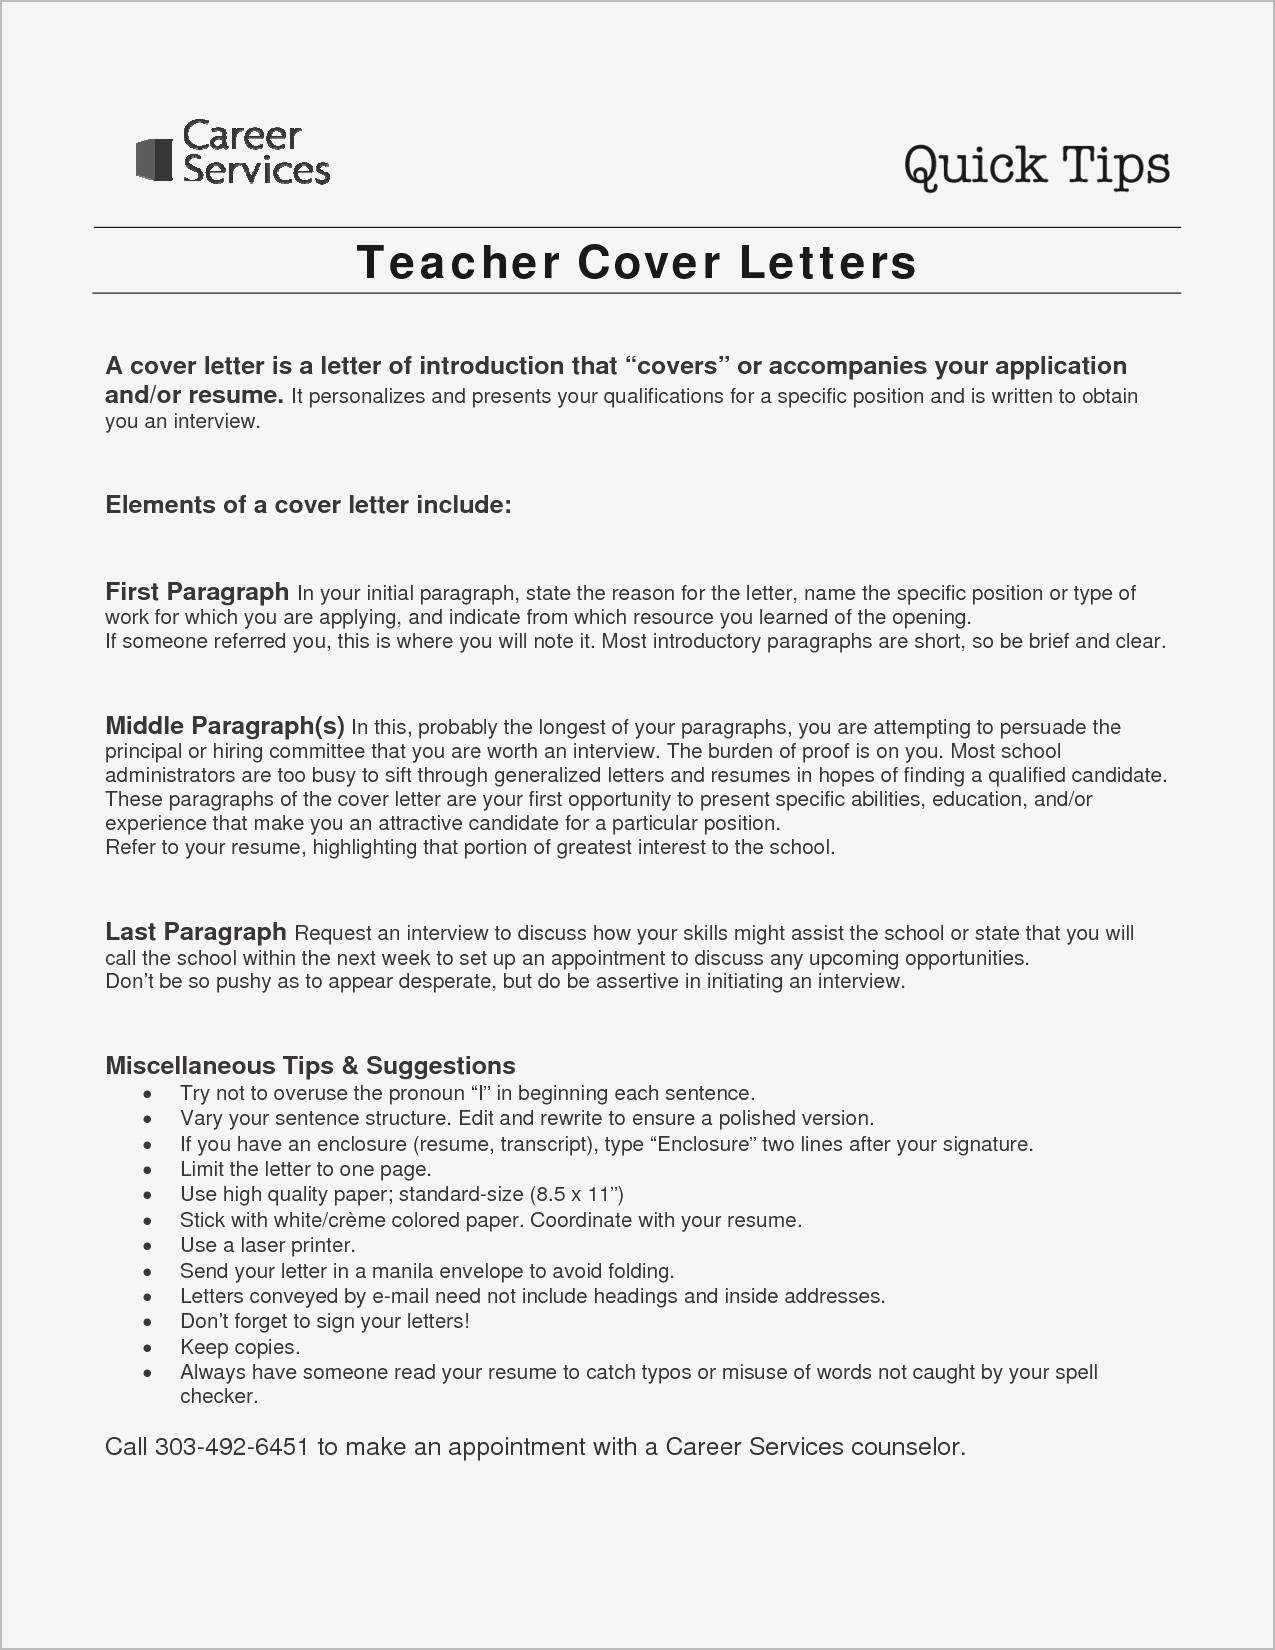 Free Collection Letter Template - Free Resume Writing Services Elegant Free Resume Website Template